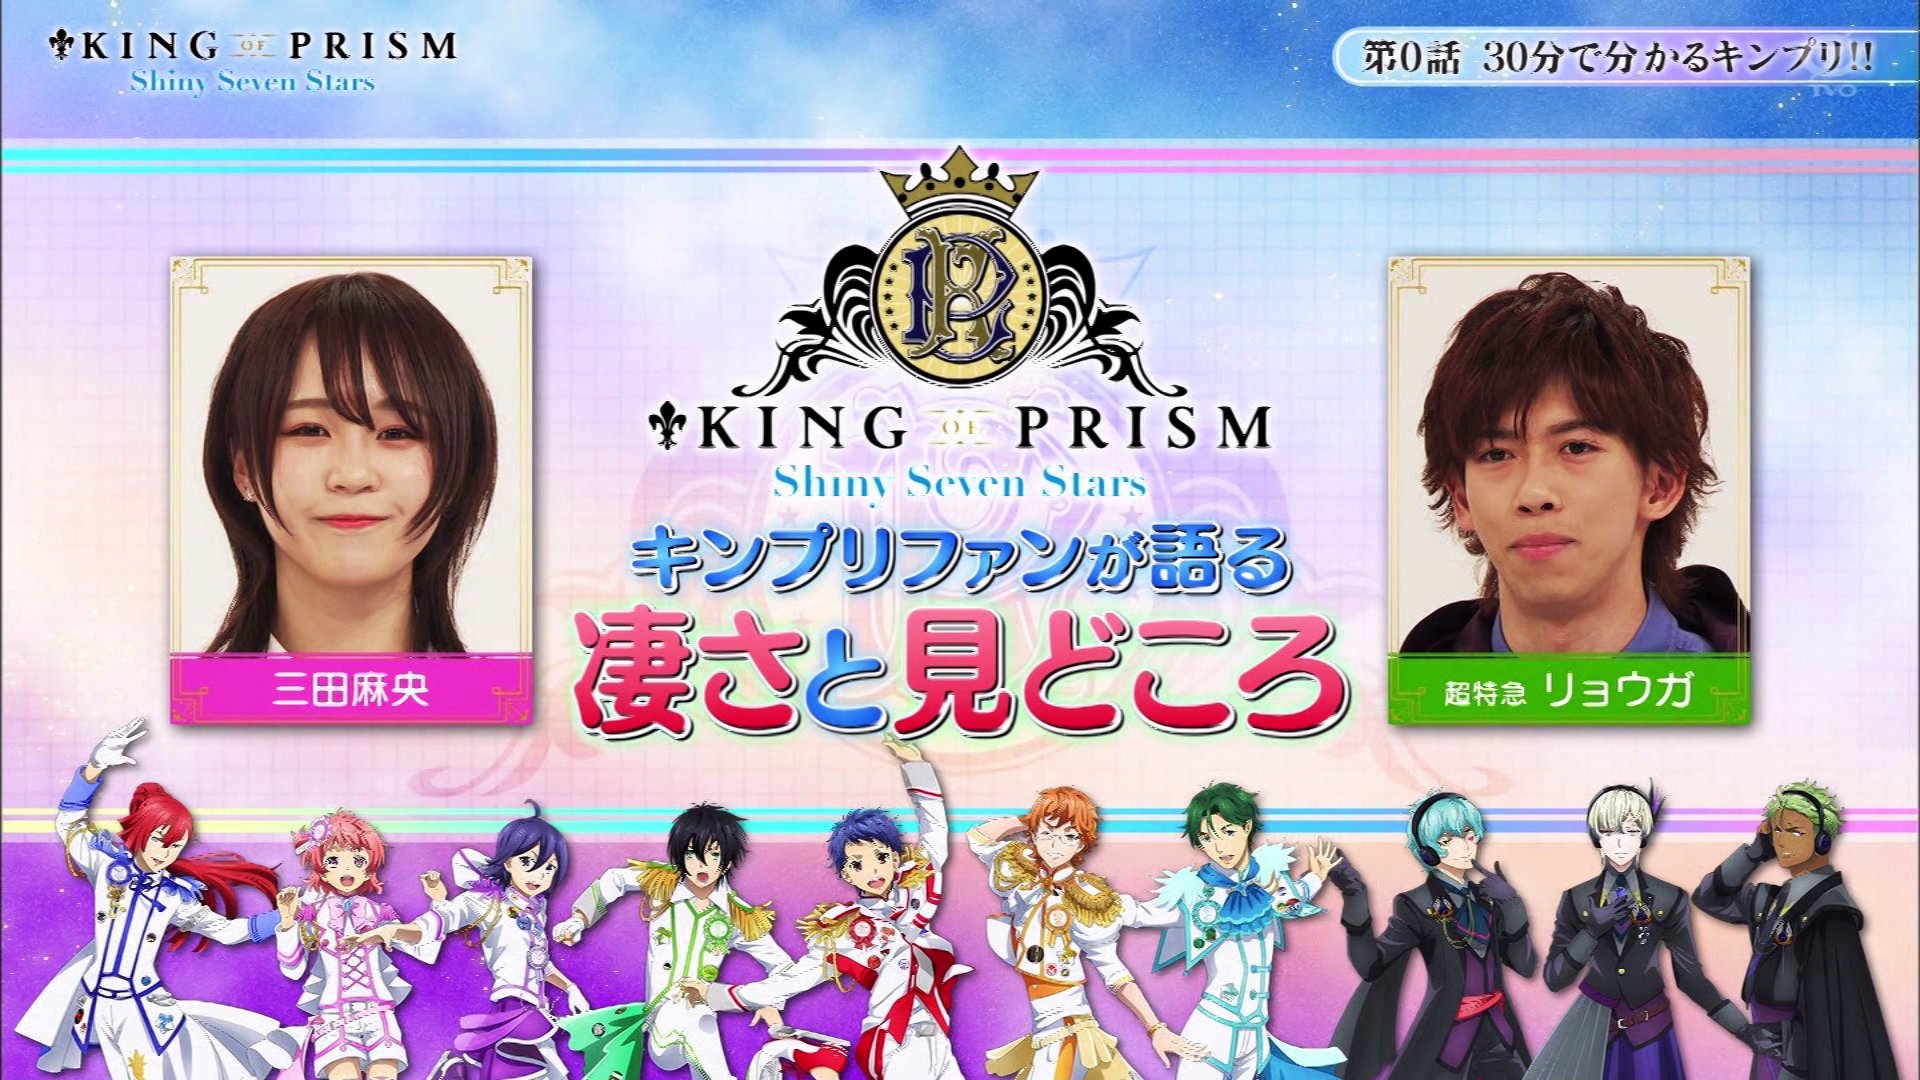 KING OF PRISM 第0話・三田麻央の画像-051